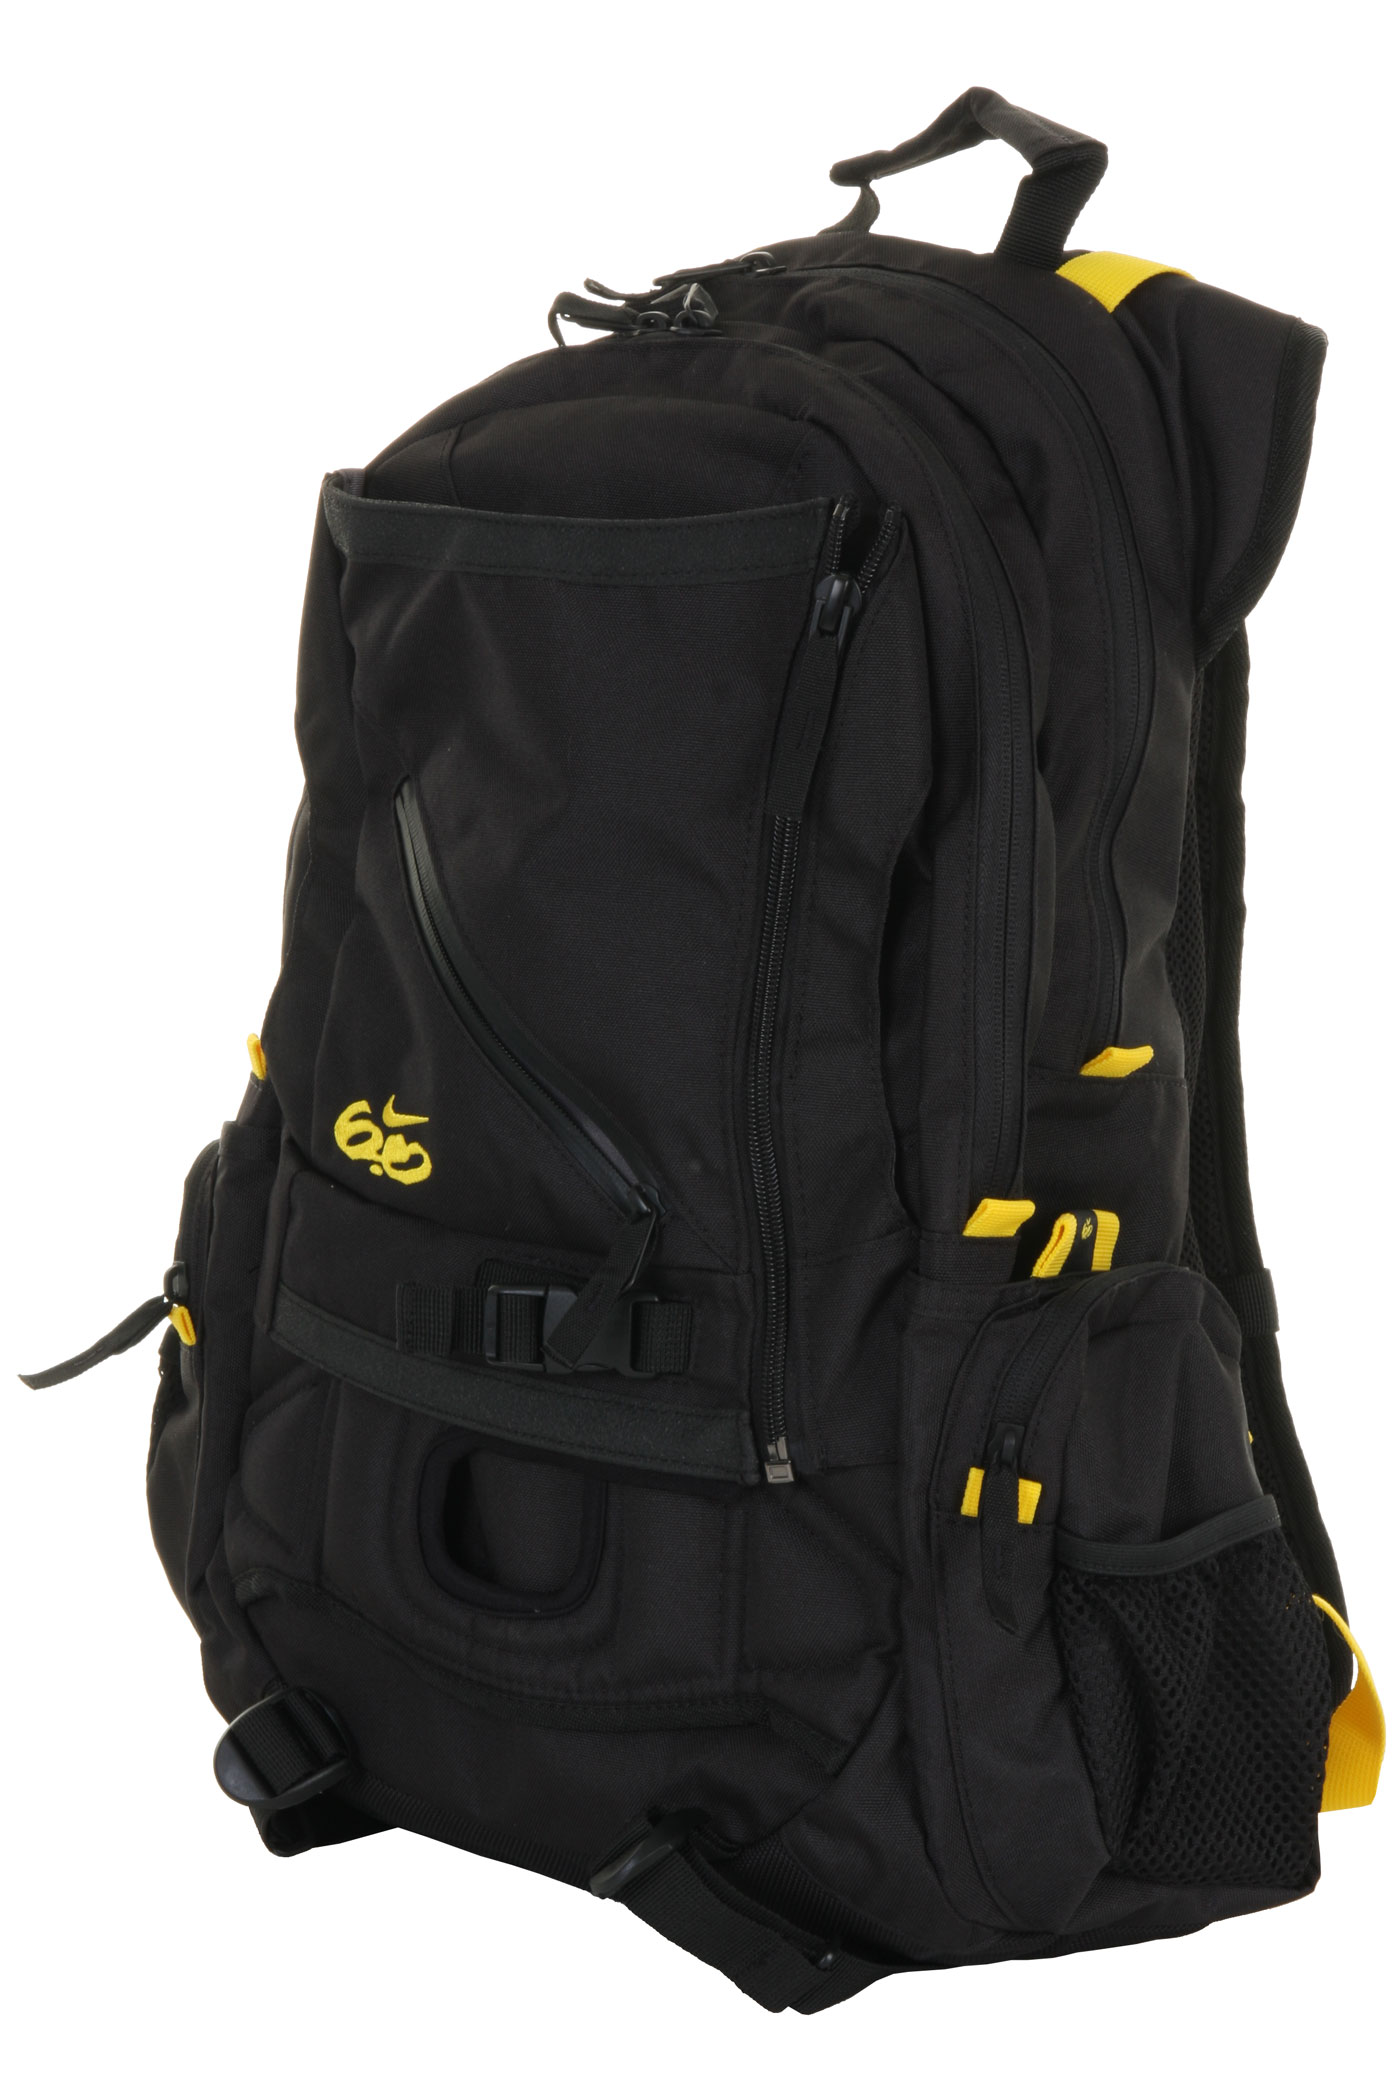 nike air force 1 pas de femme cher - Nike SB Triad Backpack (black black midwest gold) buy at skatedeluxe